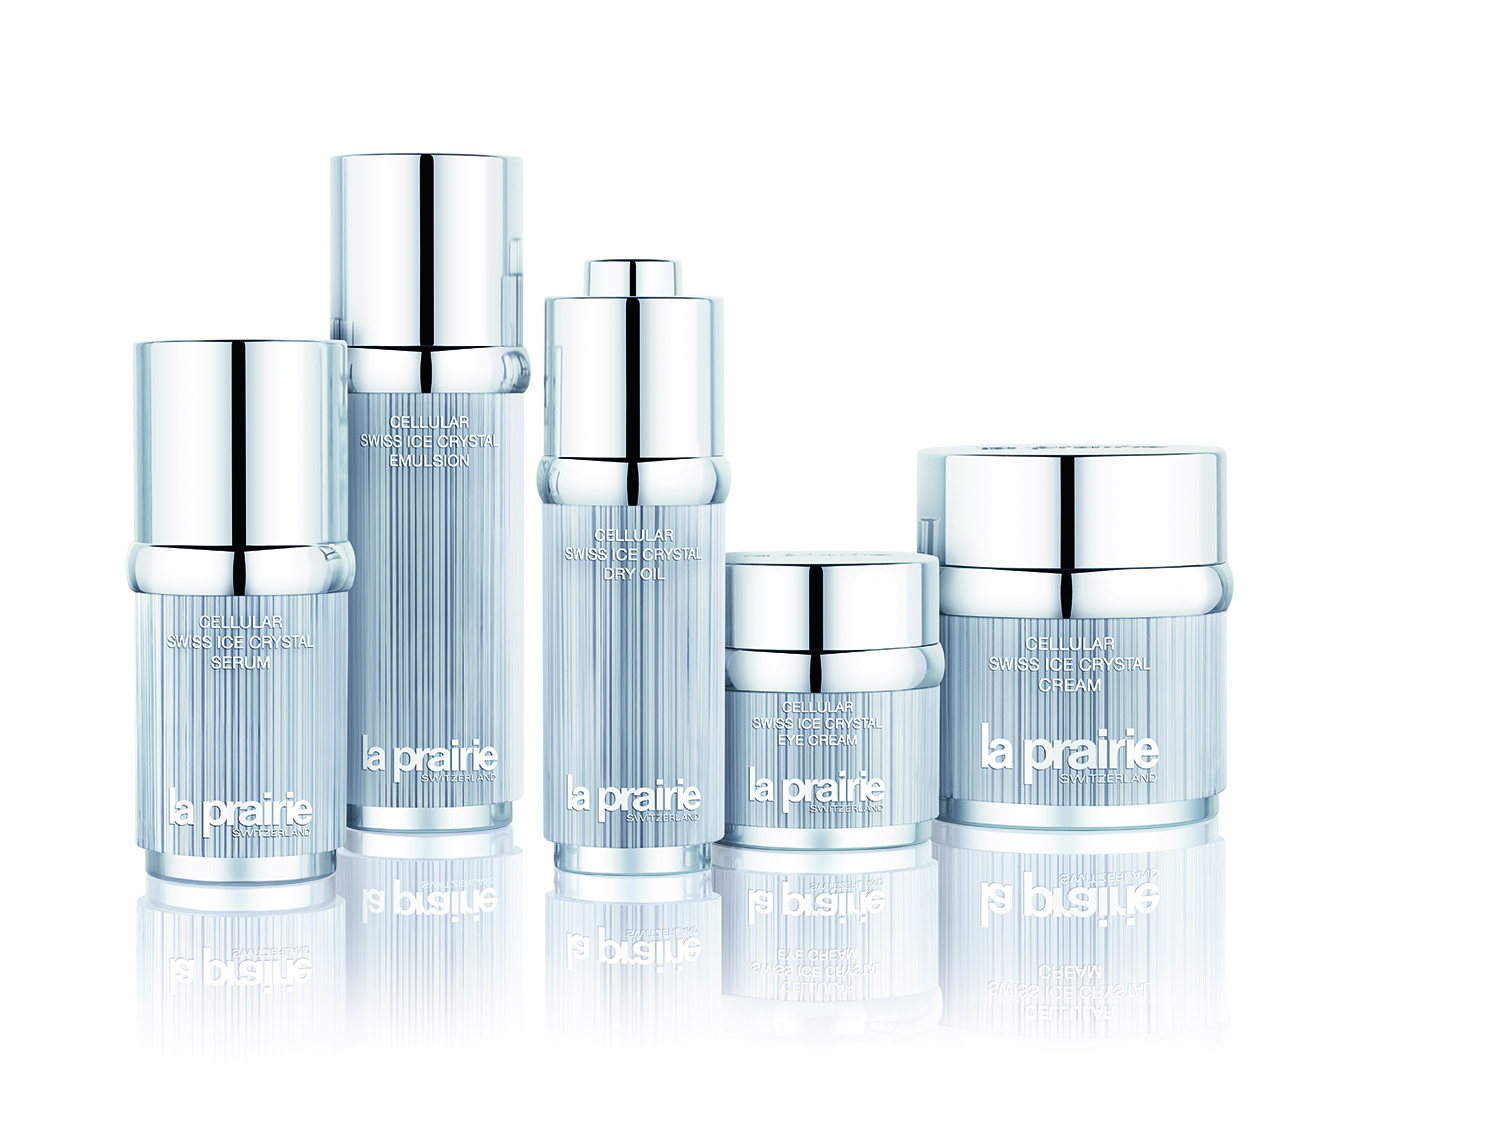 LA PRAIRIE: A NEW LAUNCH WITHIN THE CELLULAR SWISS ICE CRYSTAL COLLECTION